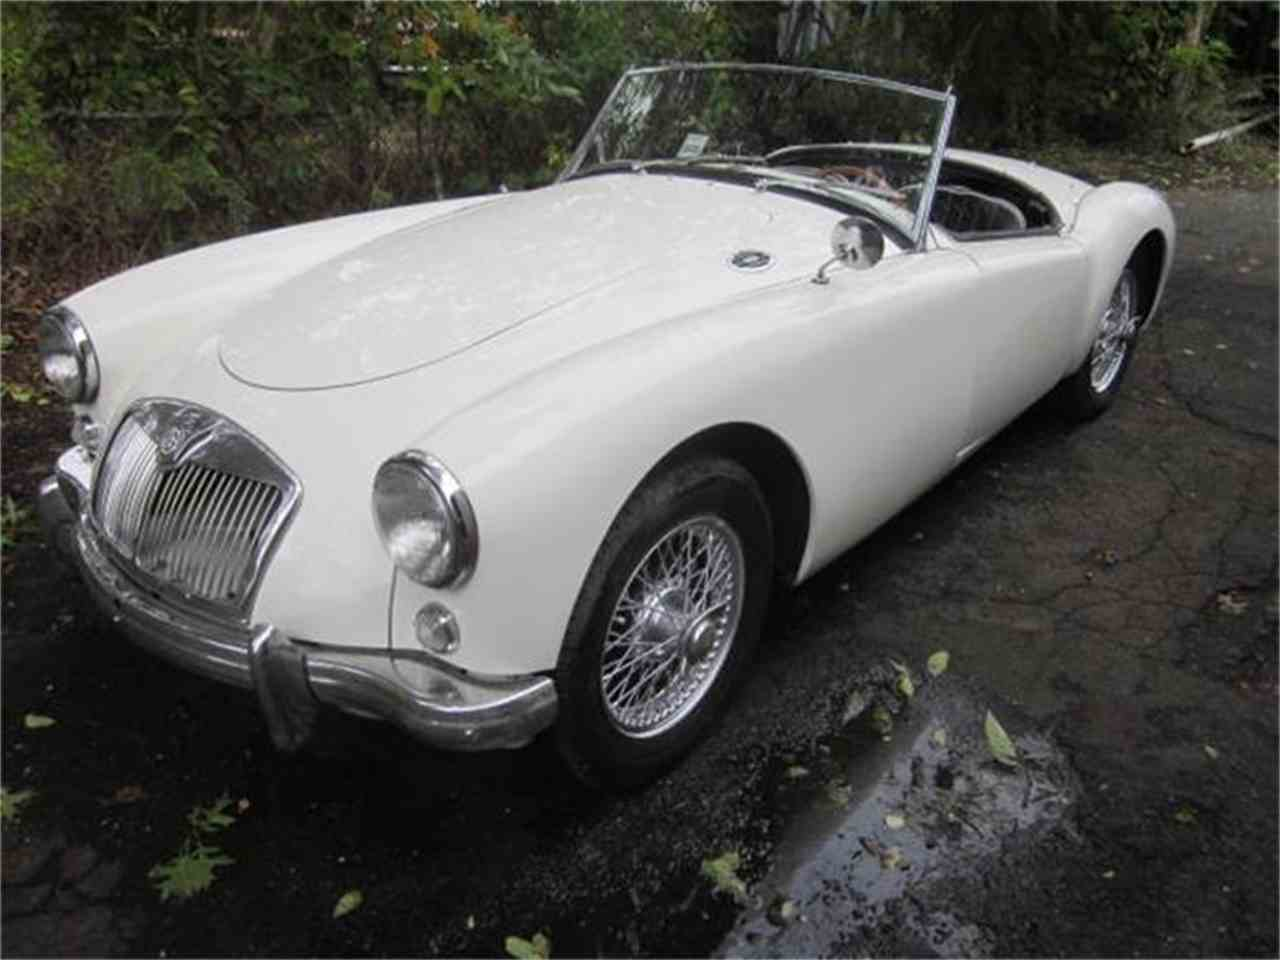 Large Picture of '58 MG MGA 1500 - $27,900.00 - FKAN